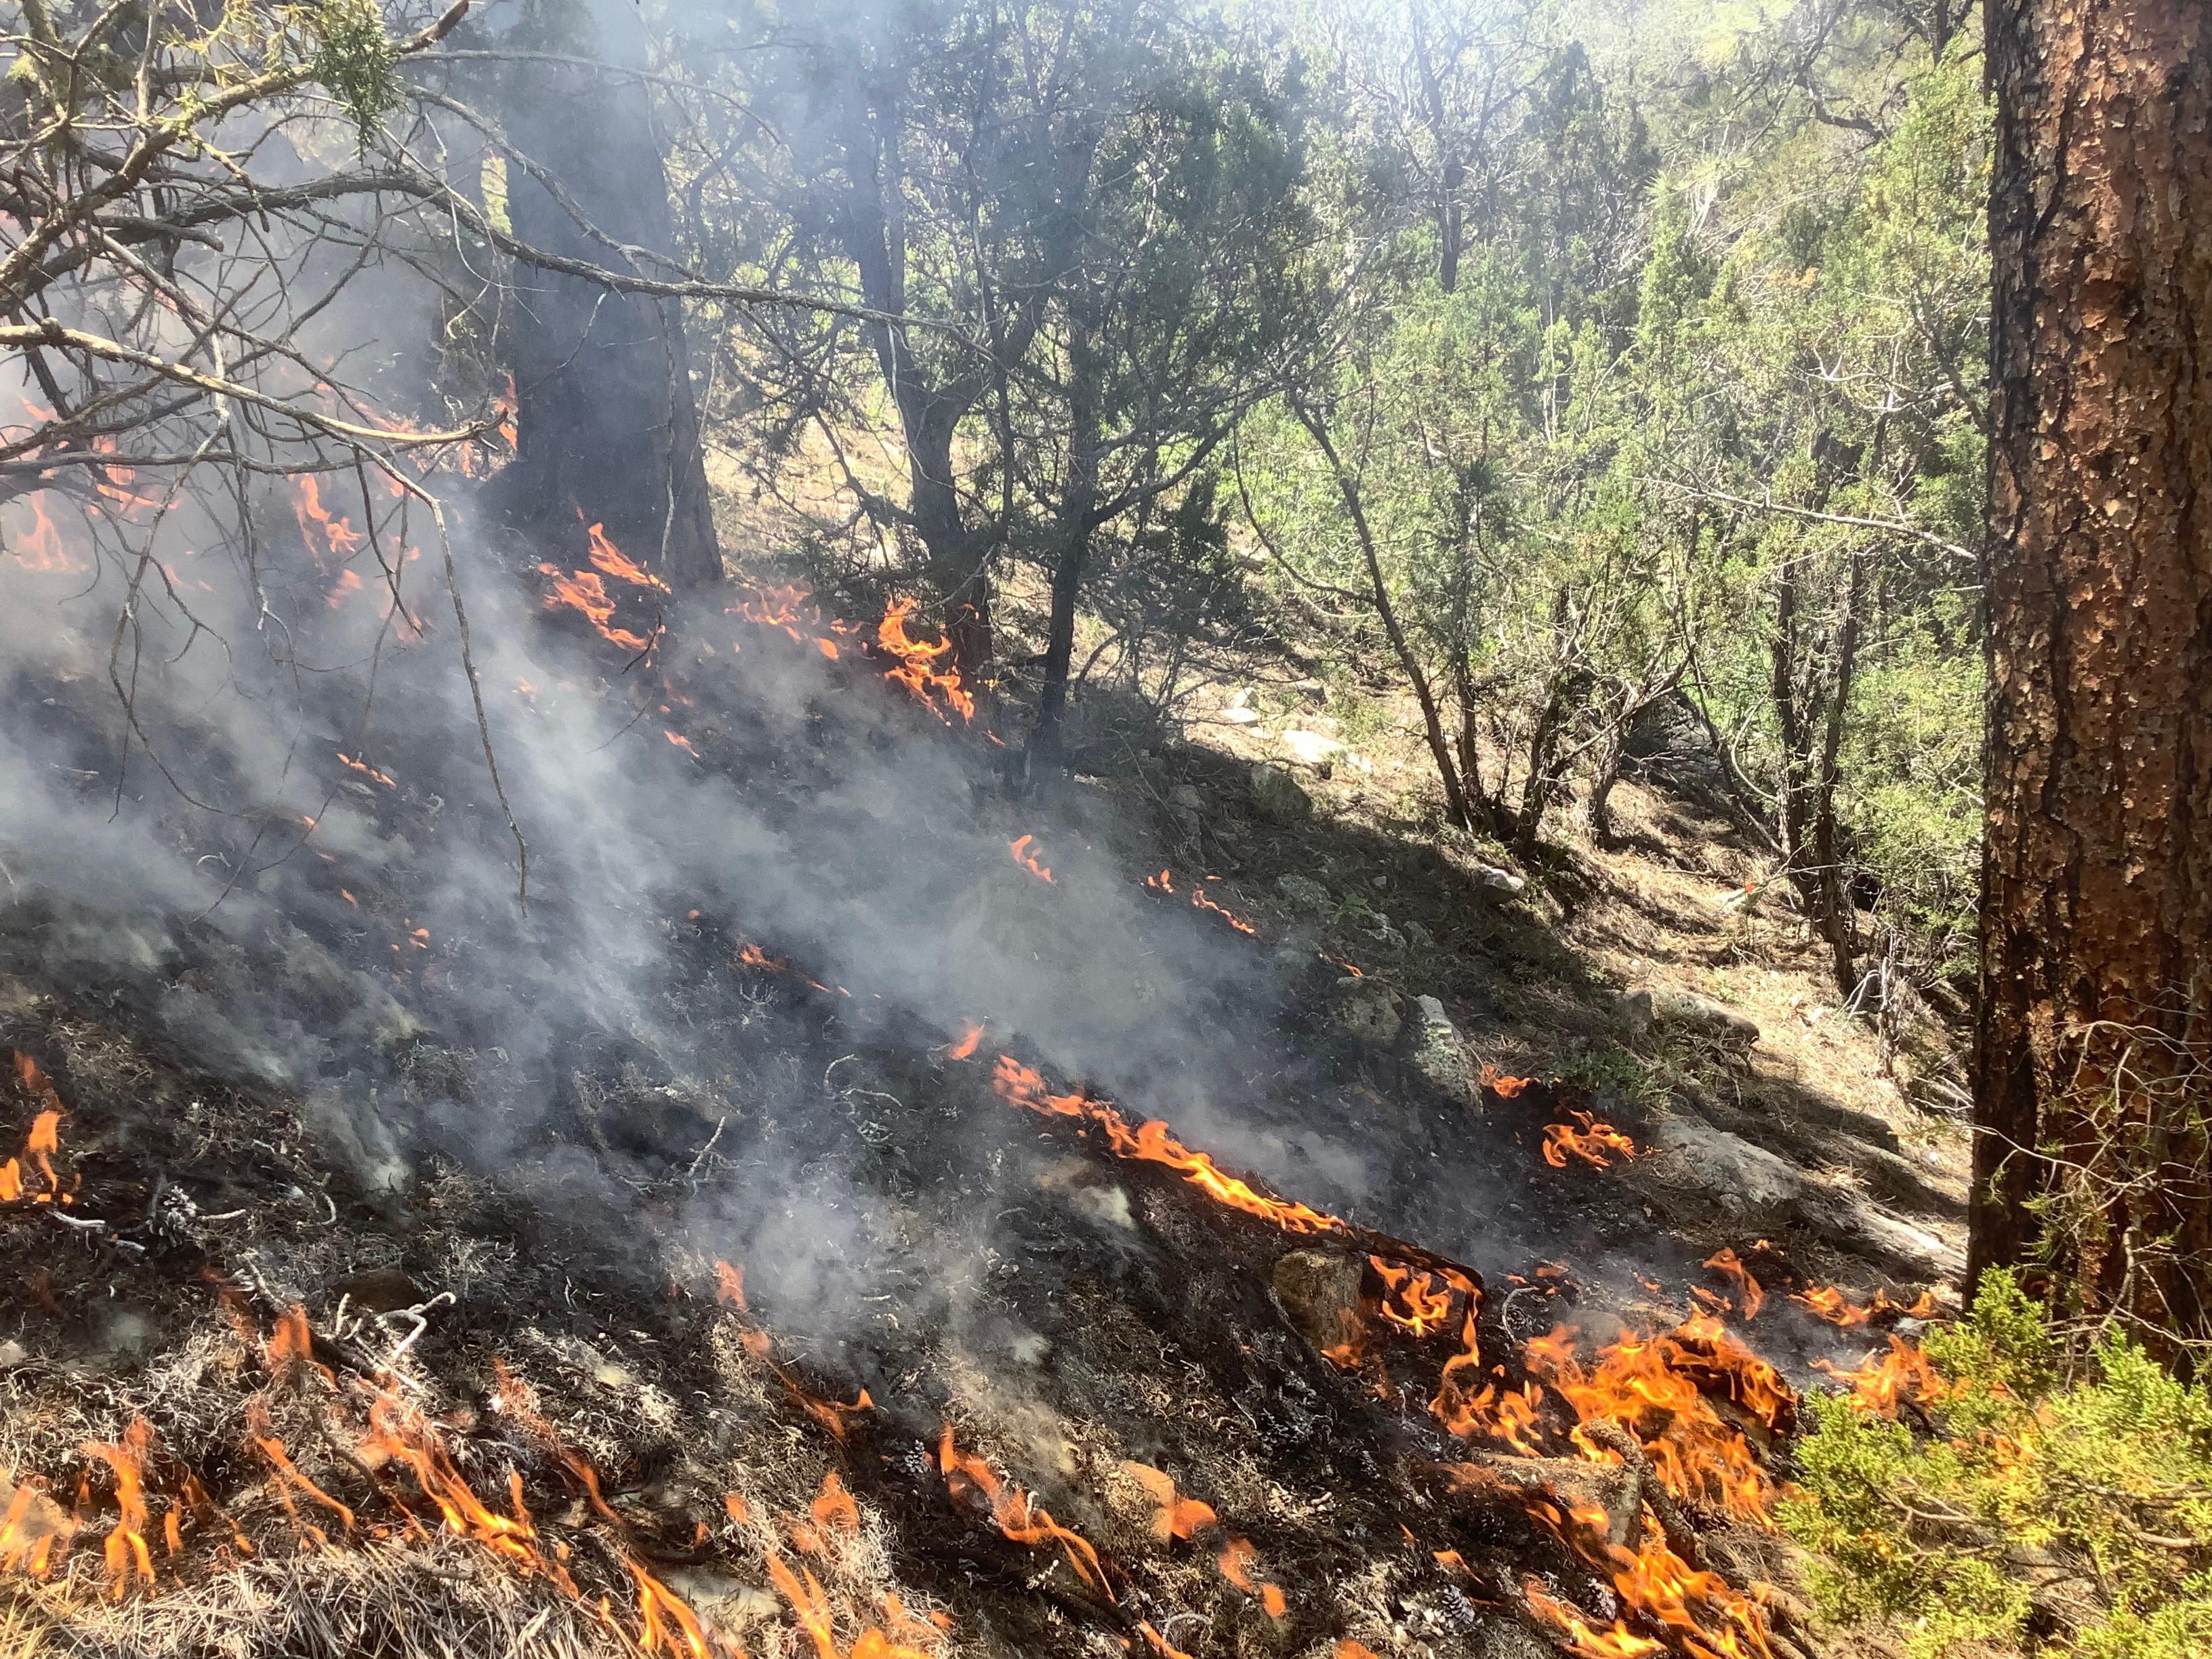 Smoke and small flames are seen creeping up the side of a slope.